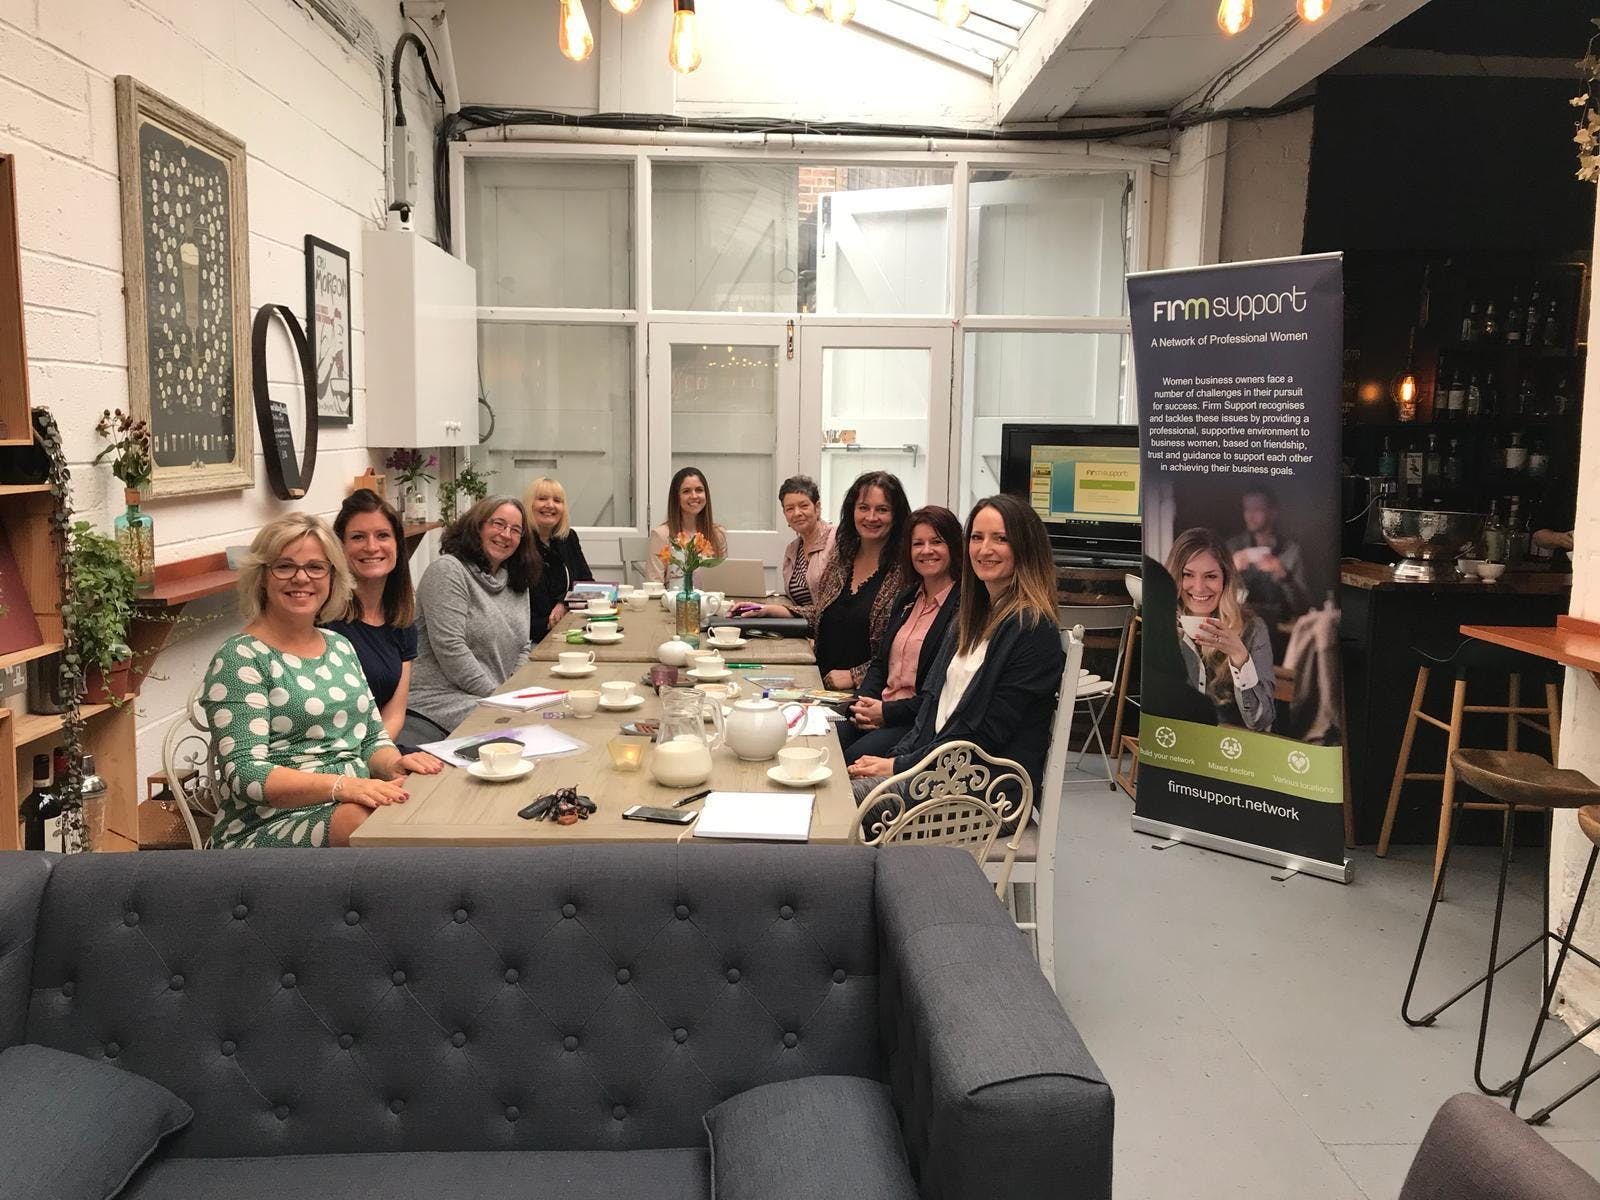 Firm Support Ladies Networking Group (Visitor Booking)